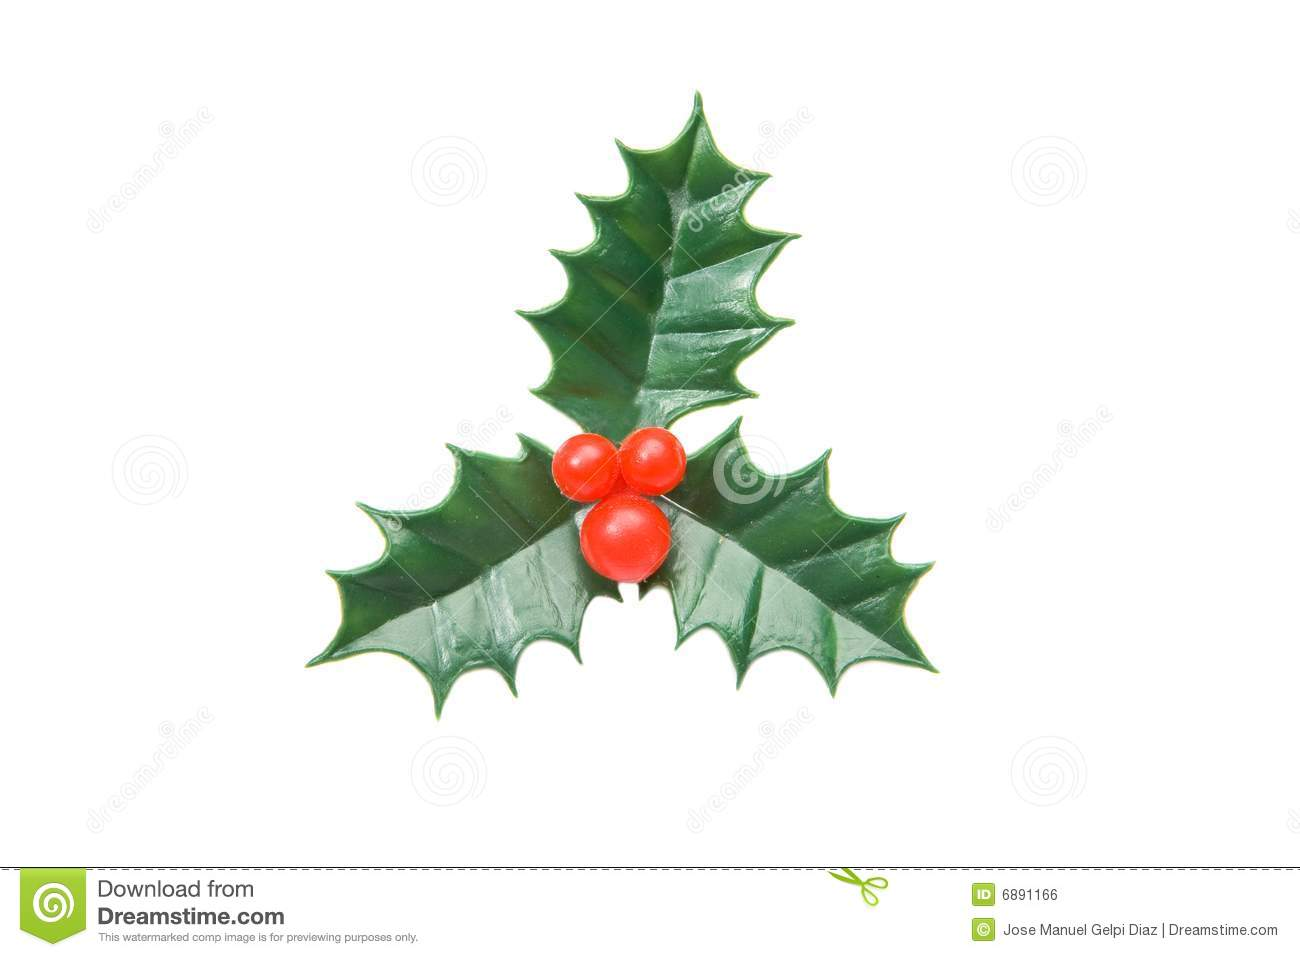 The holly typical ornament of christmas